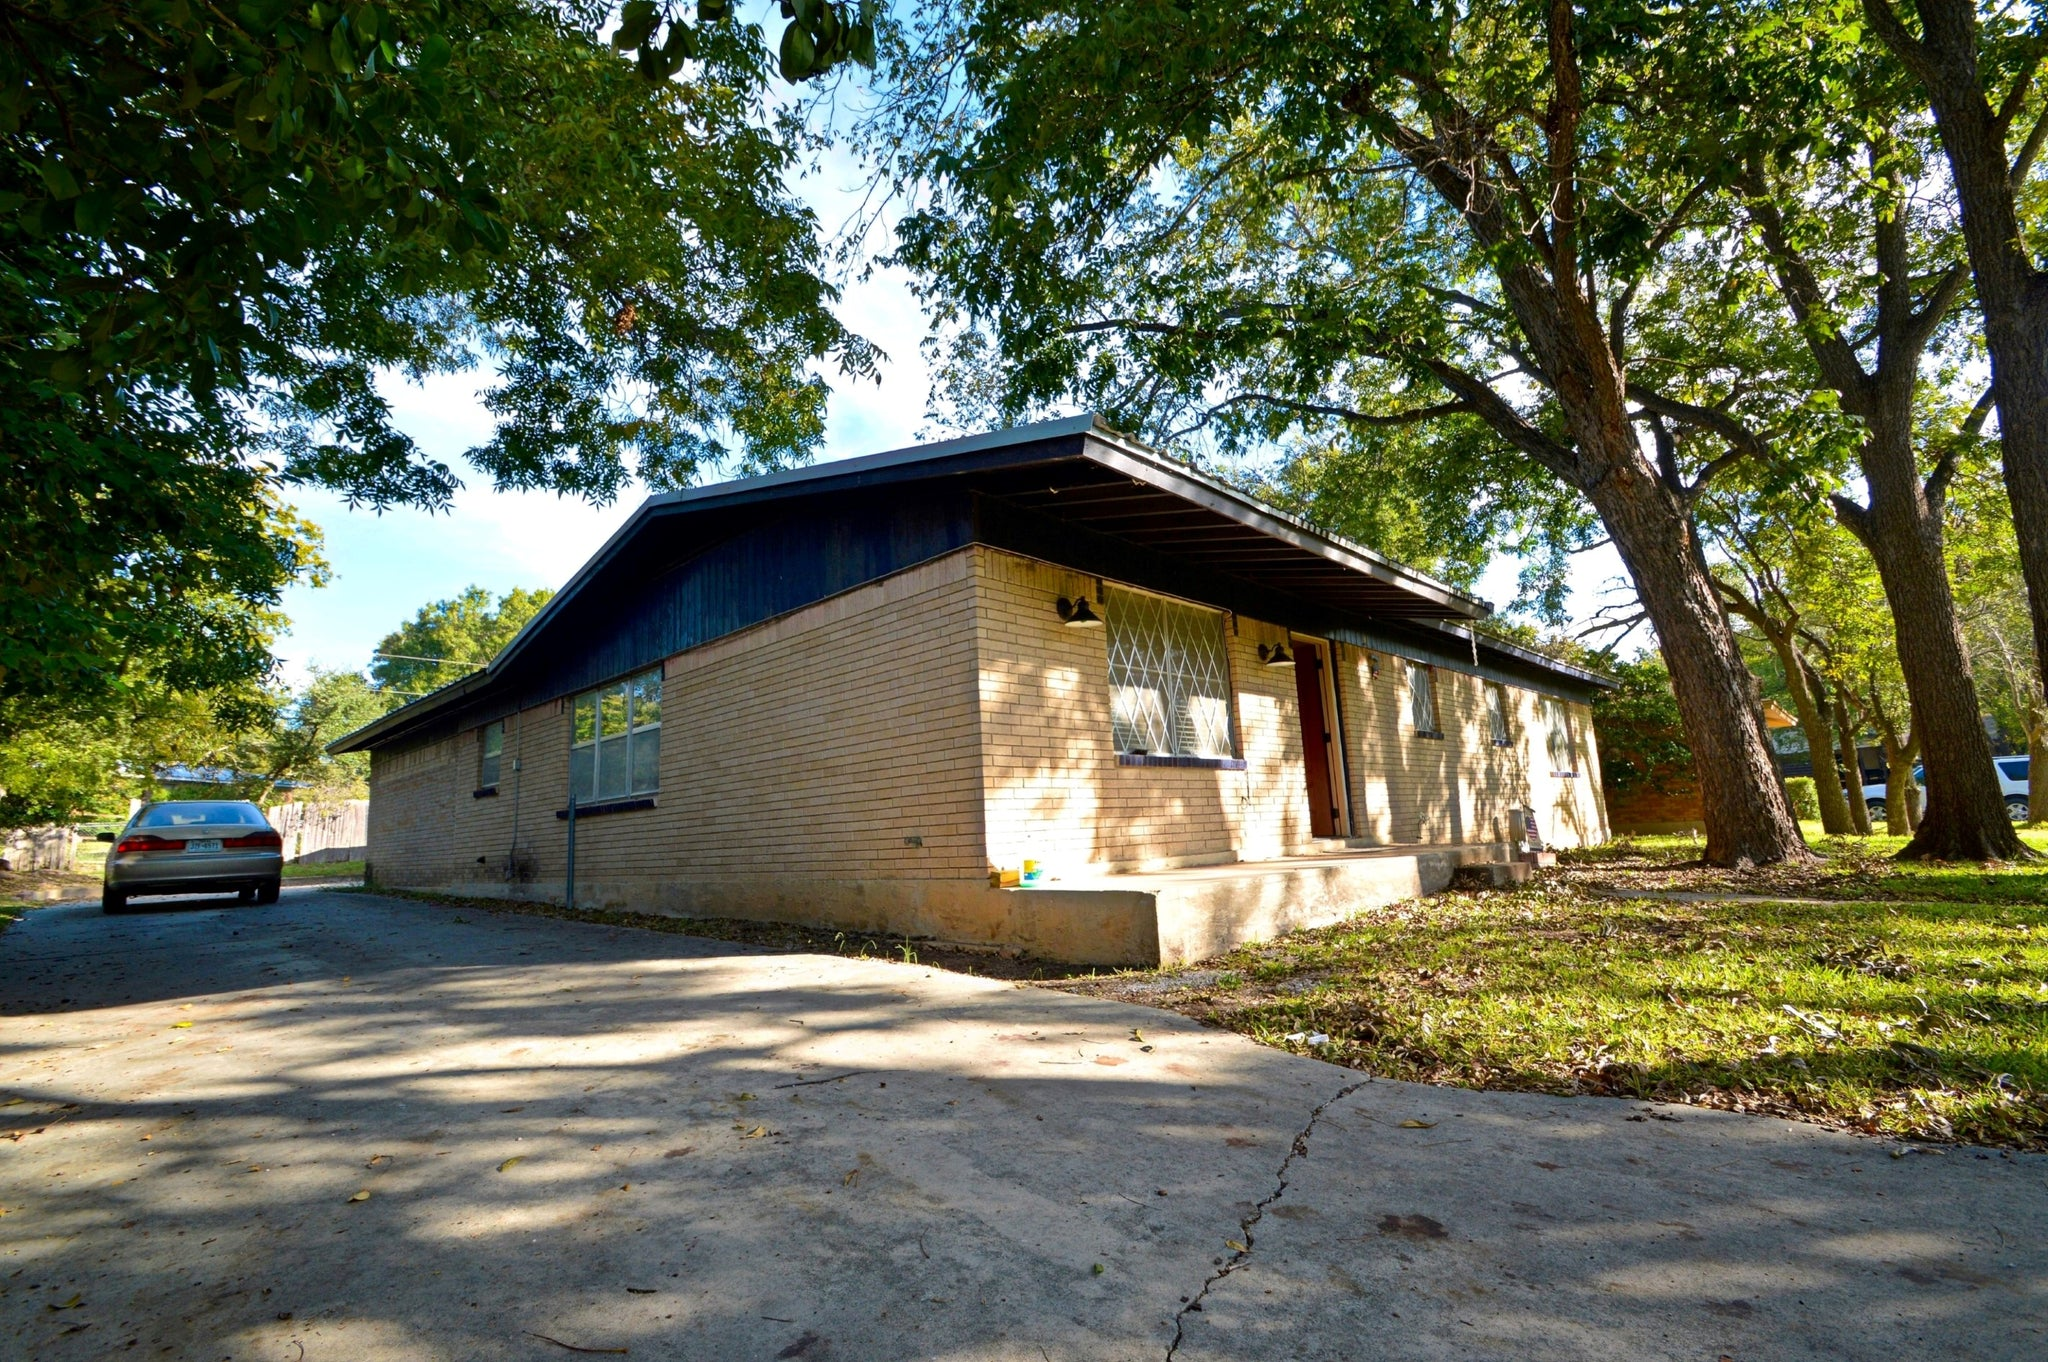 SOLD!  3 Bedroom 2 Bath Brick Home at 1417 West 4th Street,  Lampasas Texas 76550